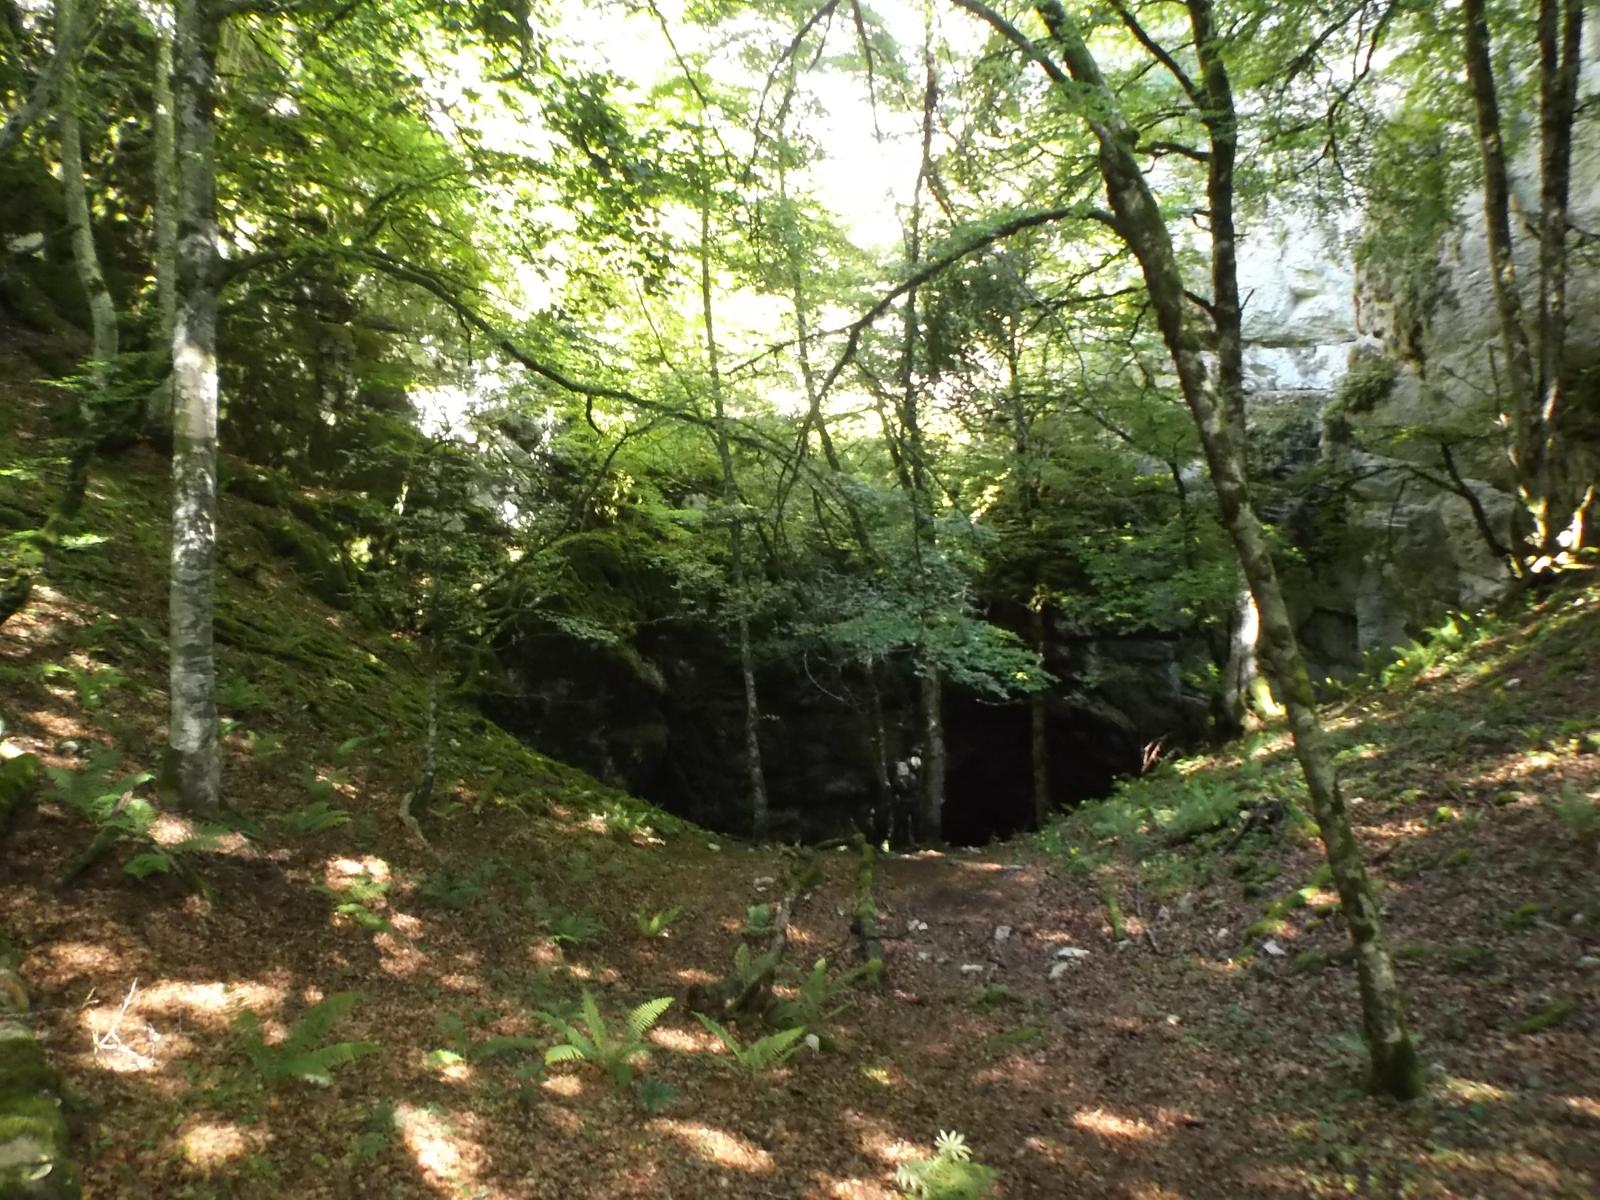 Photo of Cueva de Arleze